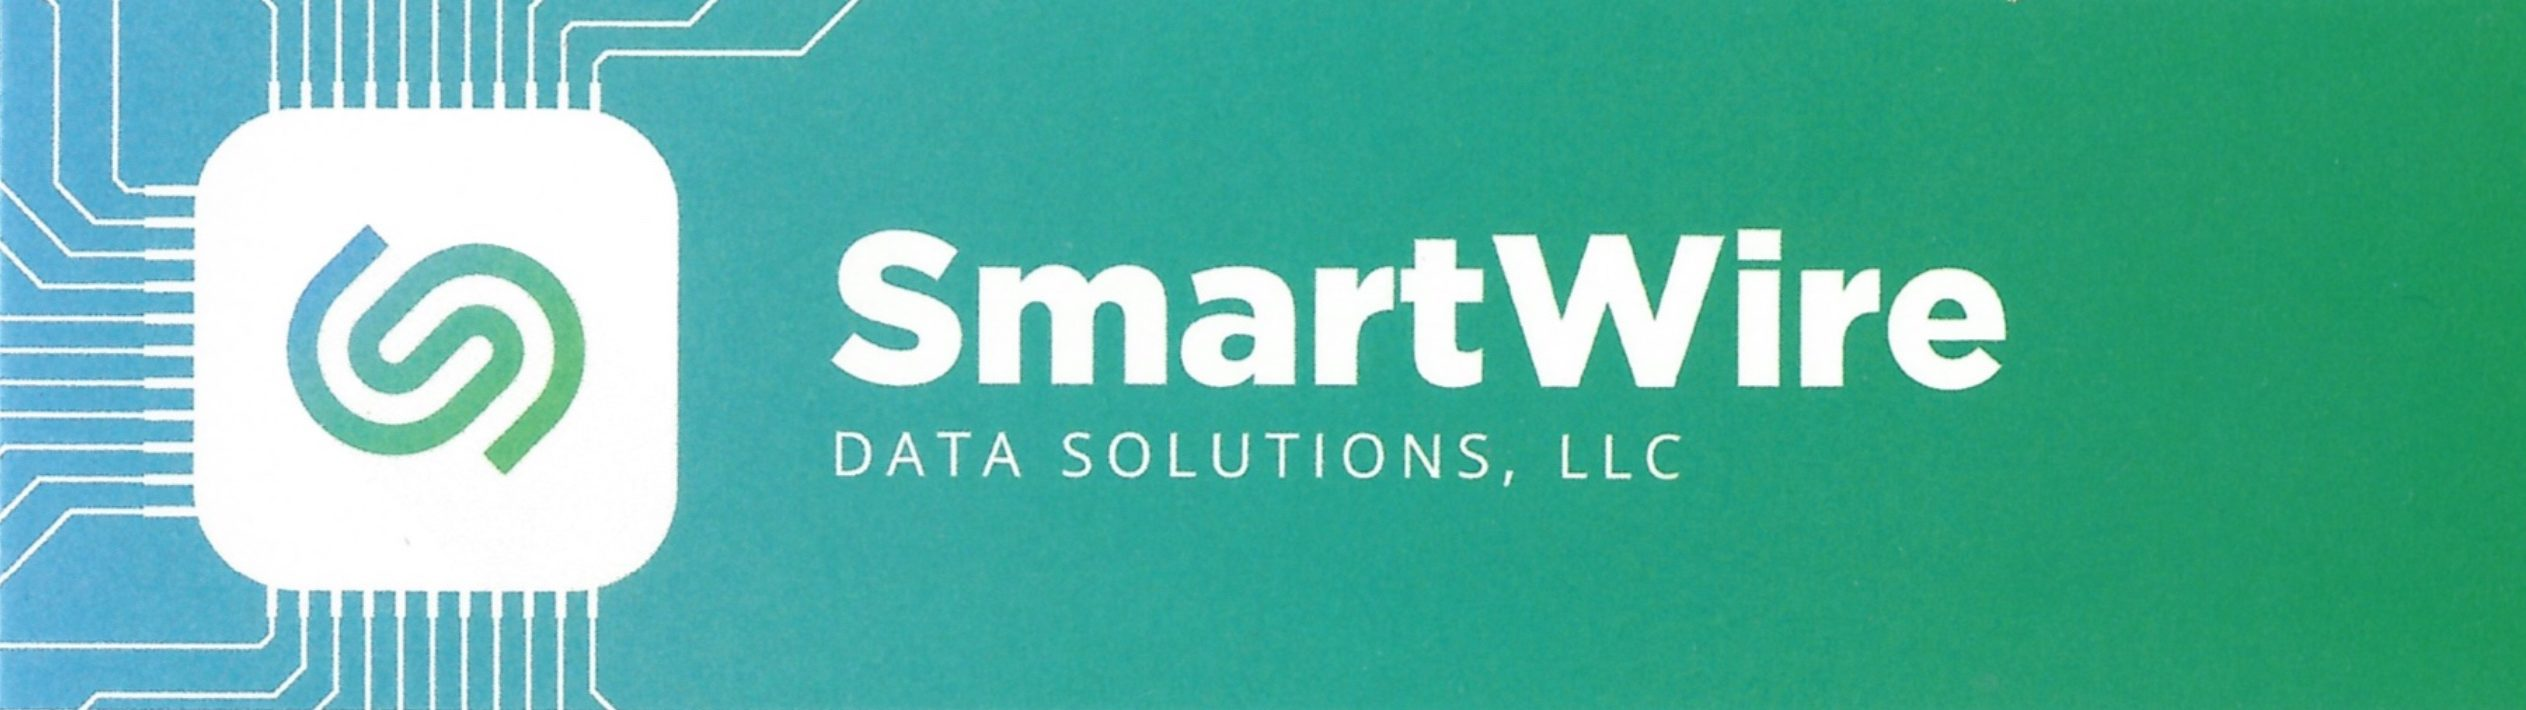 SmartWire Data Solutions